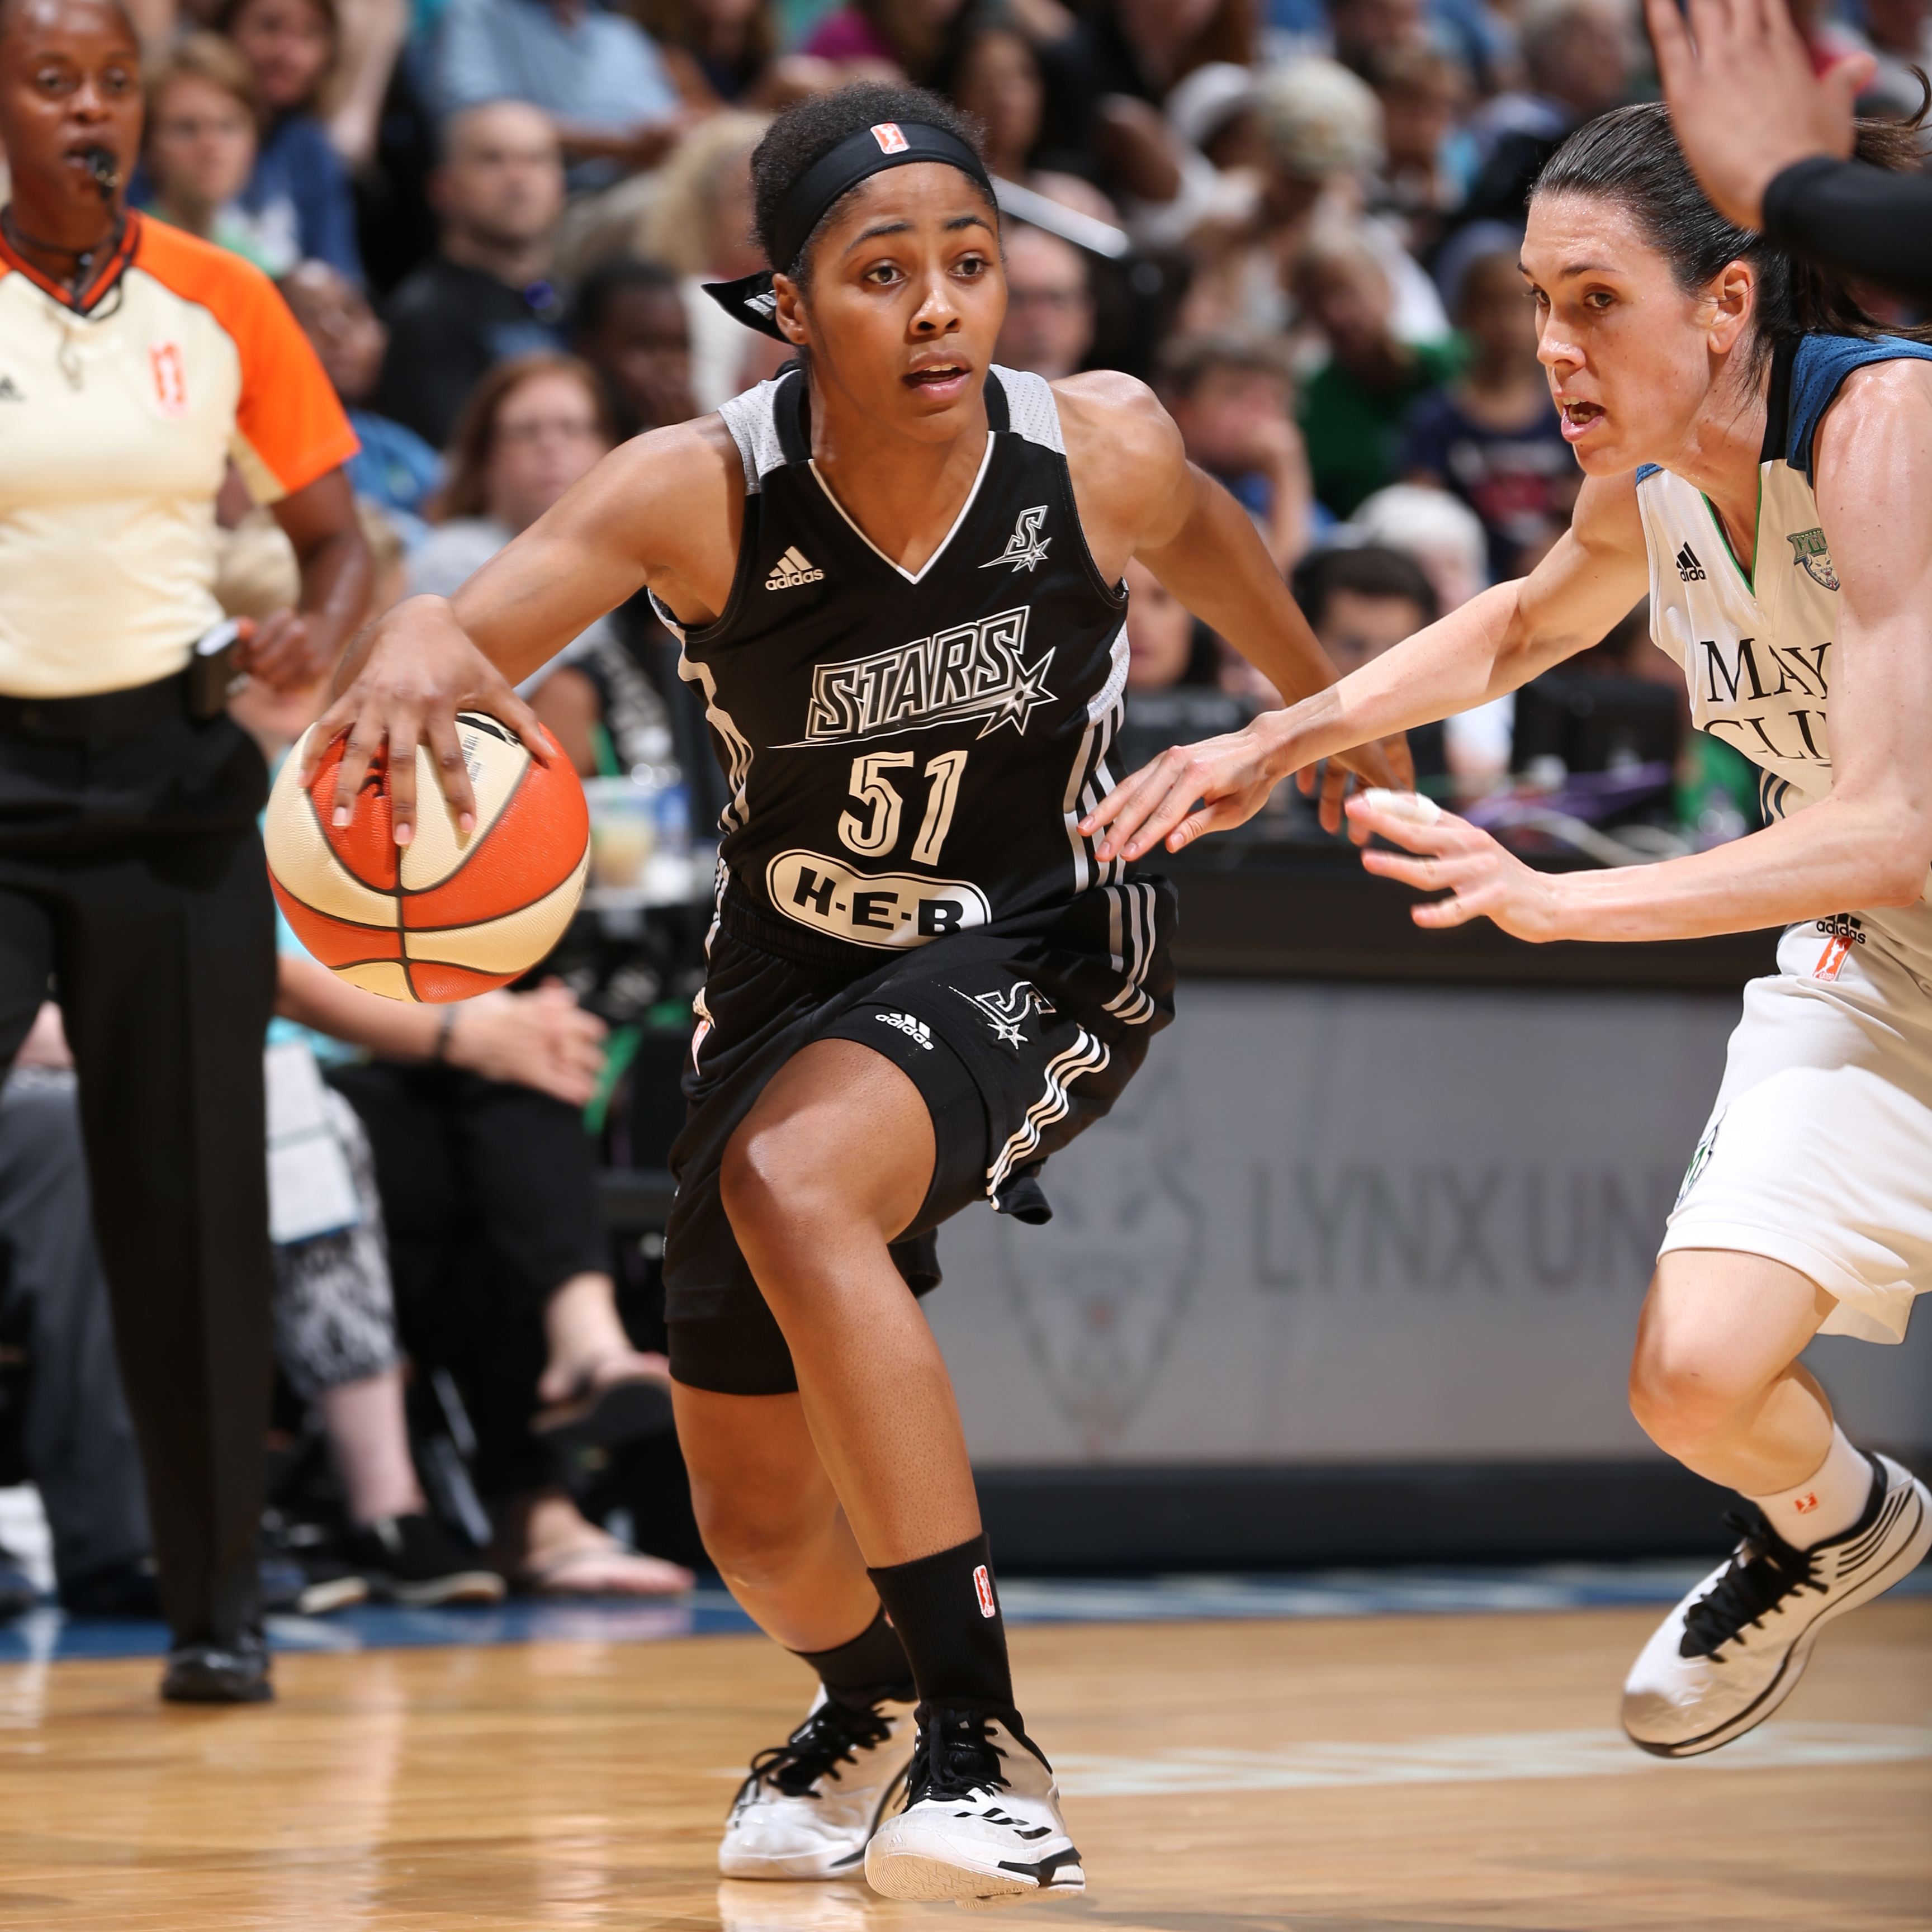 It was a rough for all Stars' guards and Sydny Colson was no exception. Colson finished with two points and four rebounds while committing three turnovers in the Stars' loss.